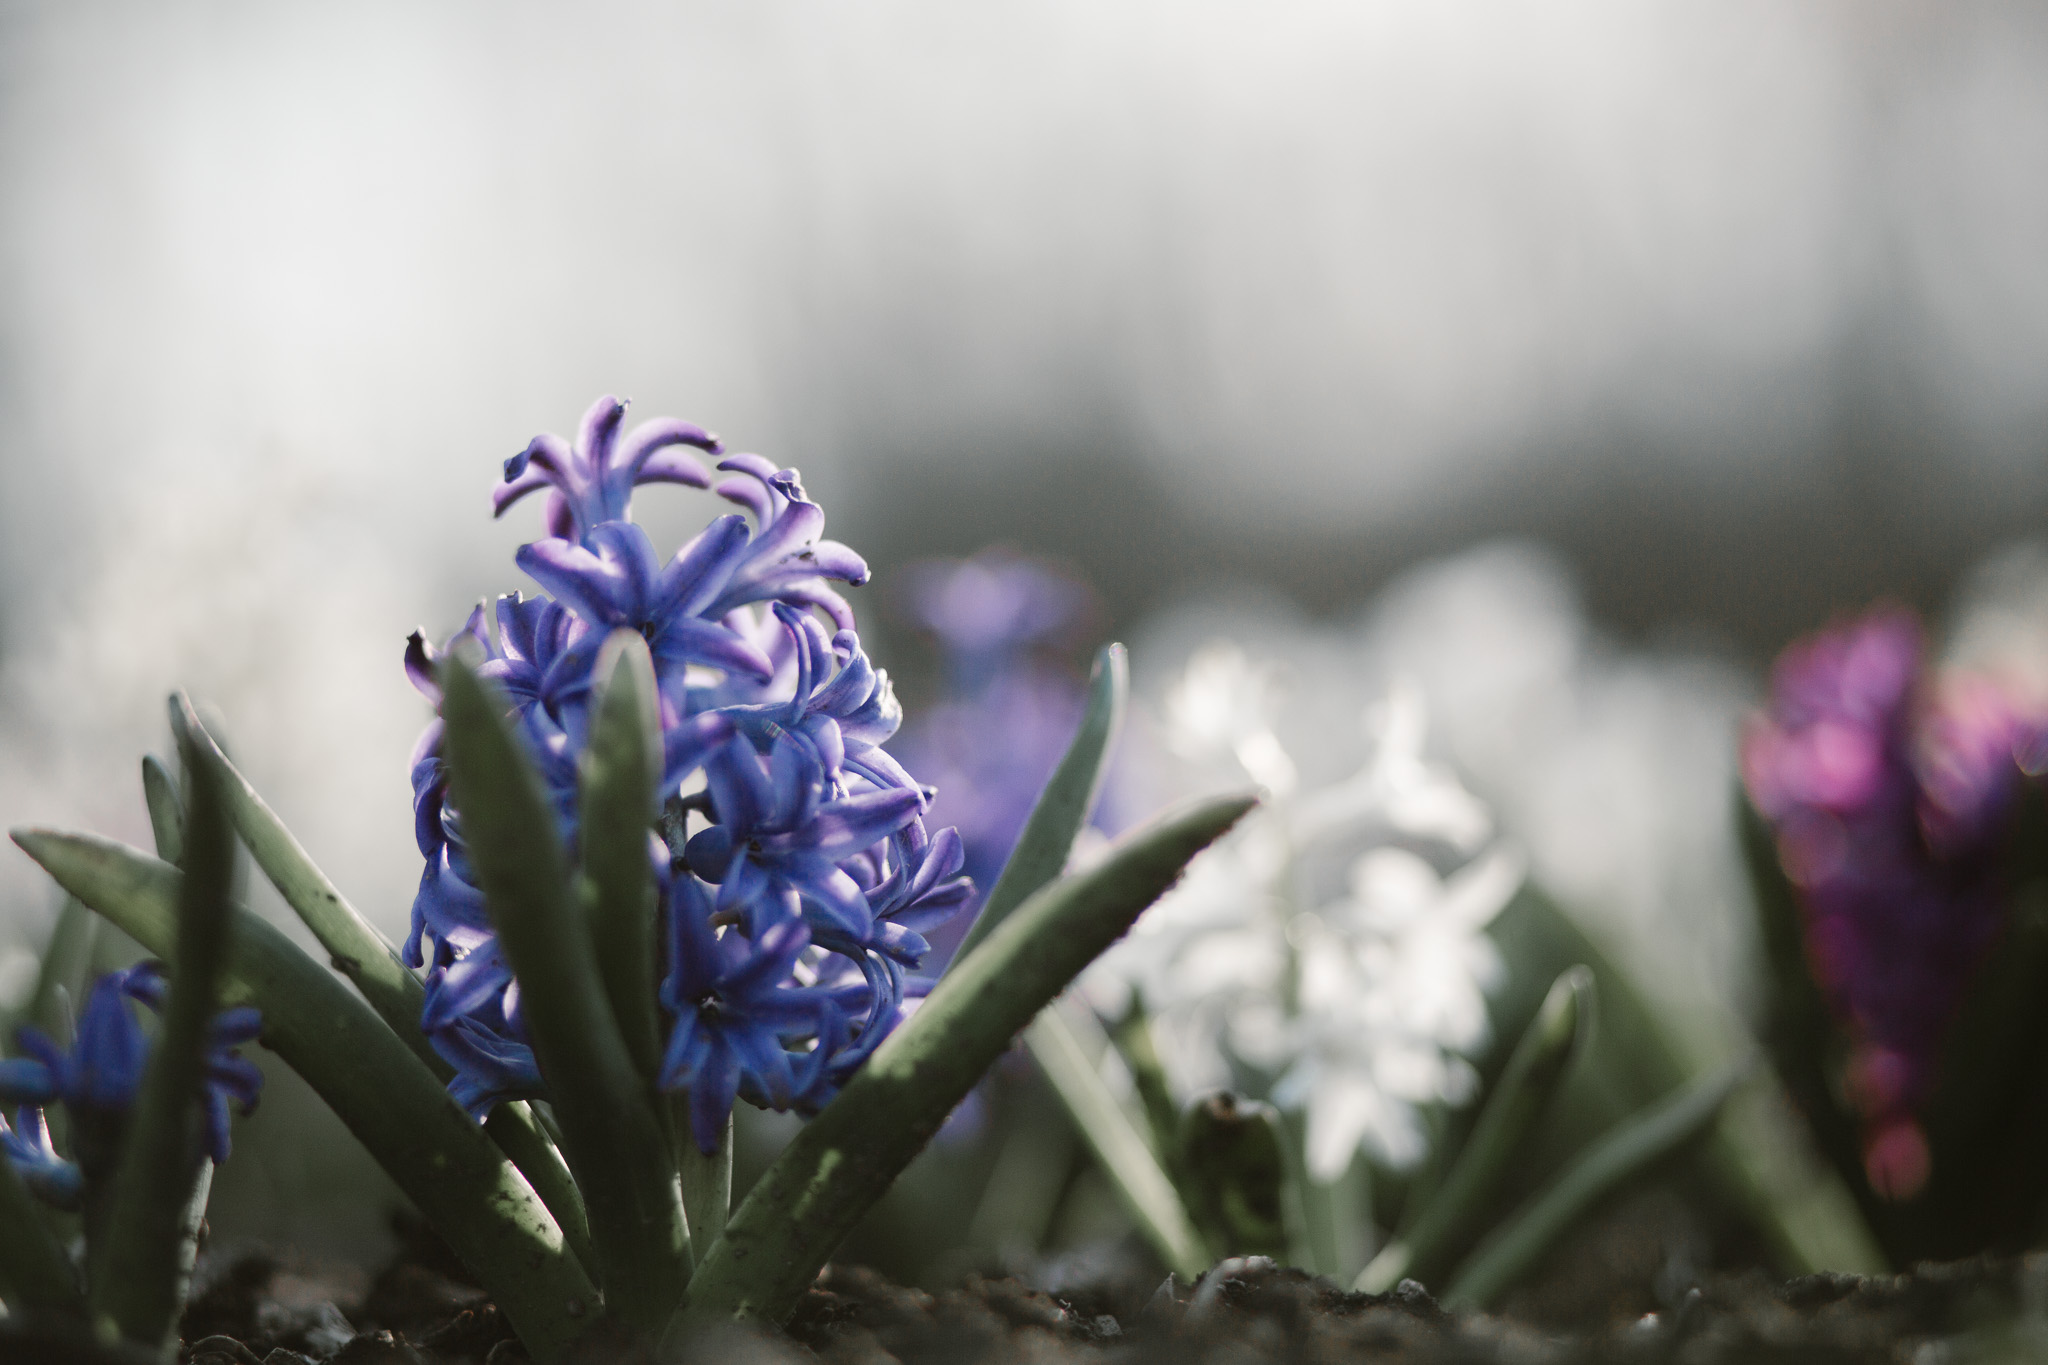 Blue, white, and purple flowers in a field of hyacinth at spring time